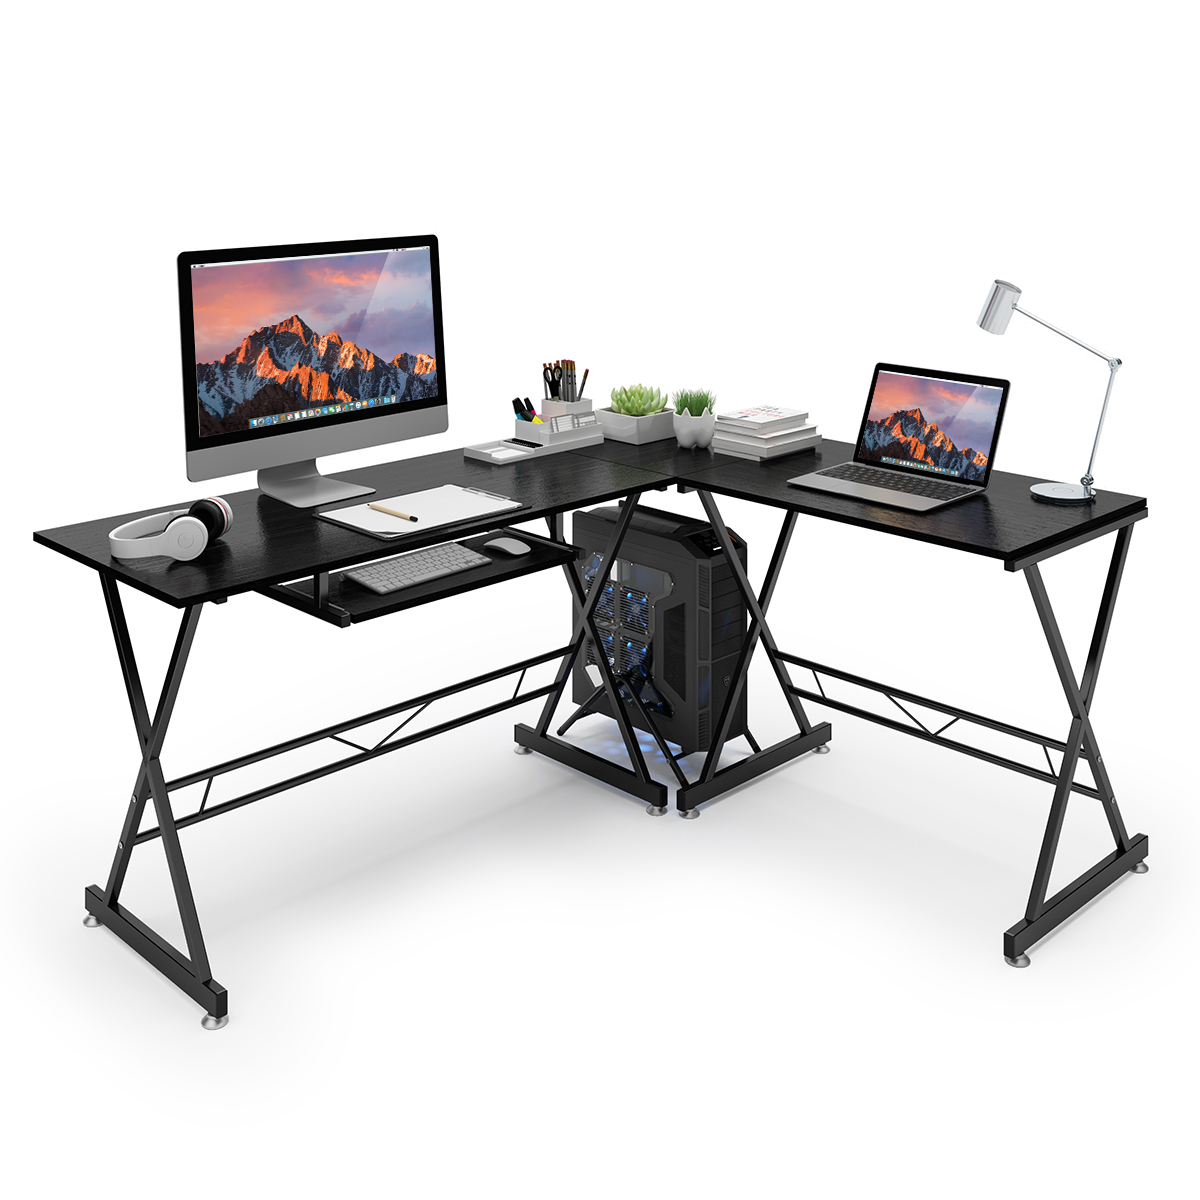 L-shaped Laptop Notebook Stand Computer Desk Home Office PC Table with Top Shelf